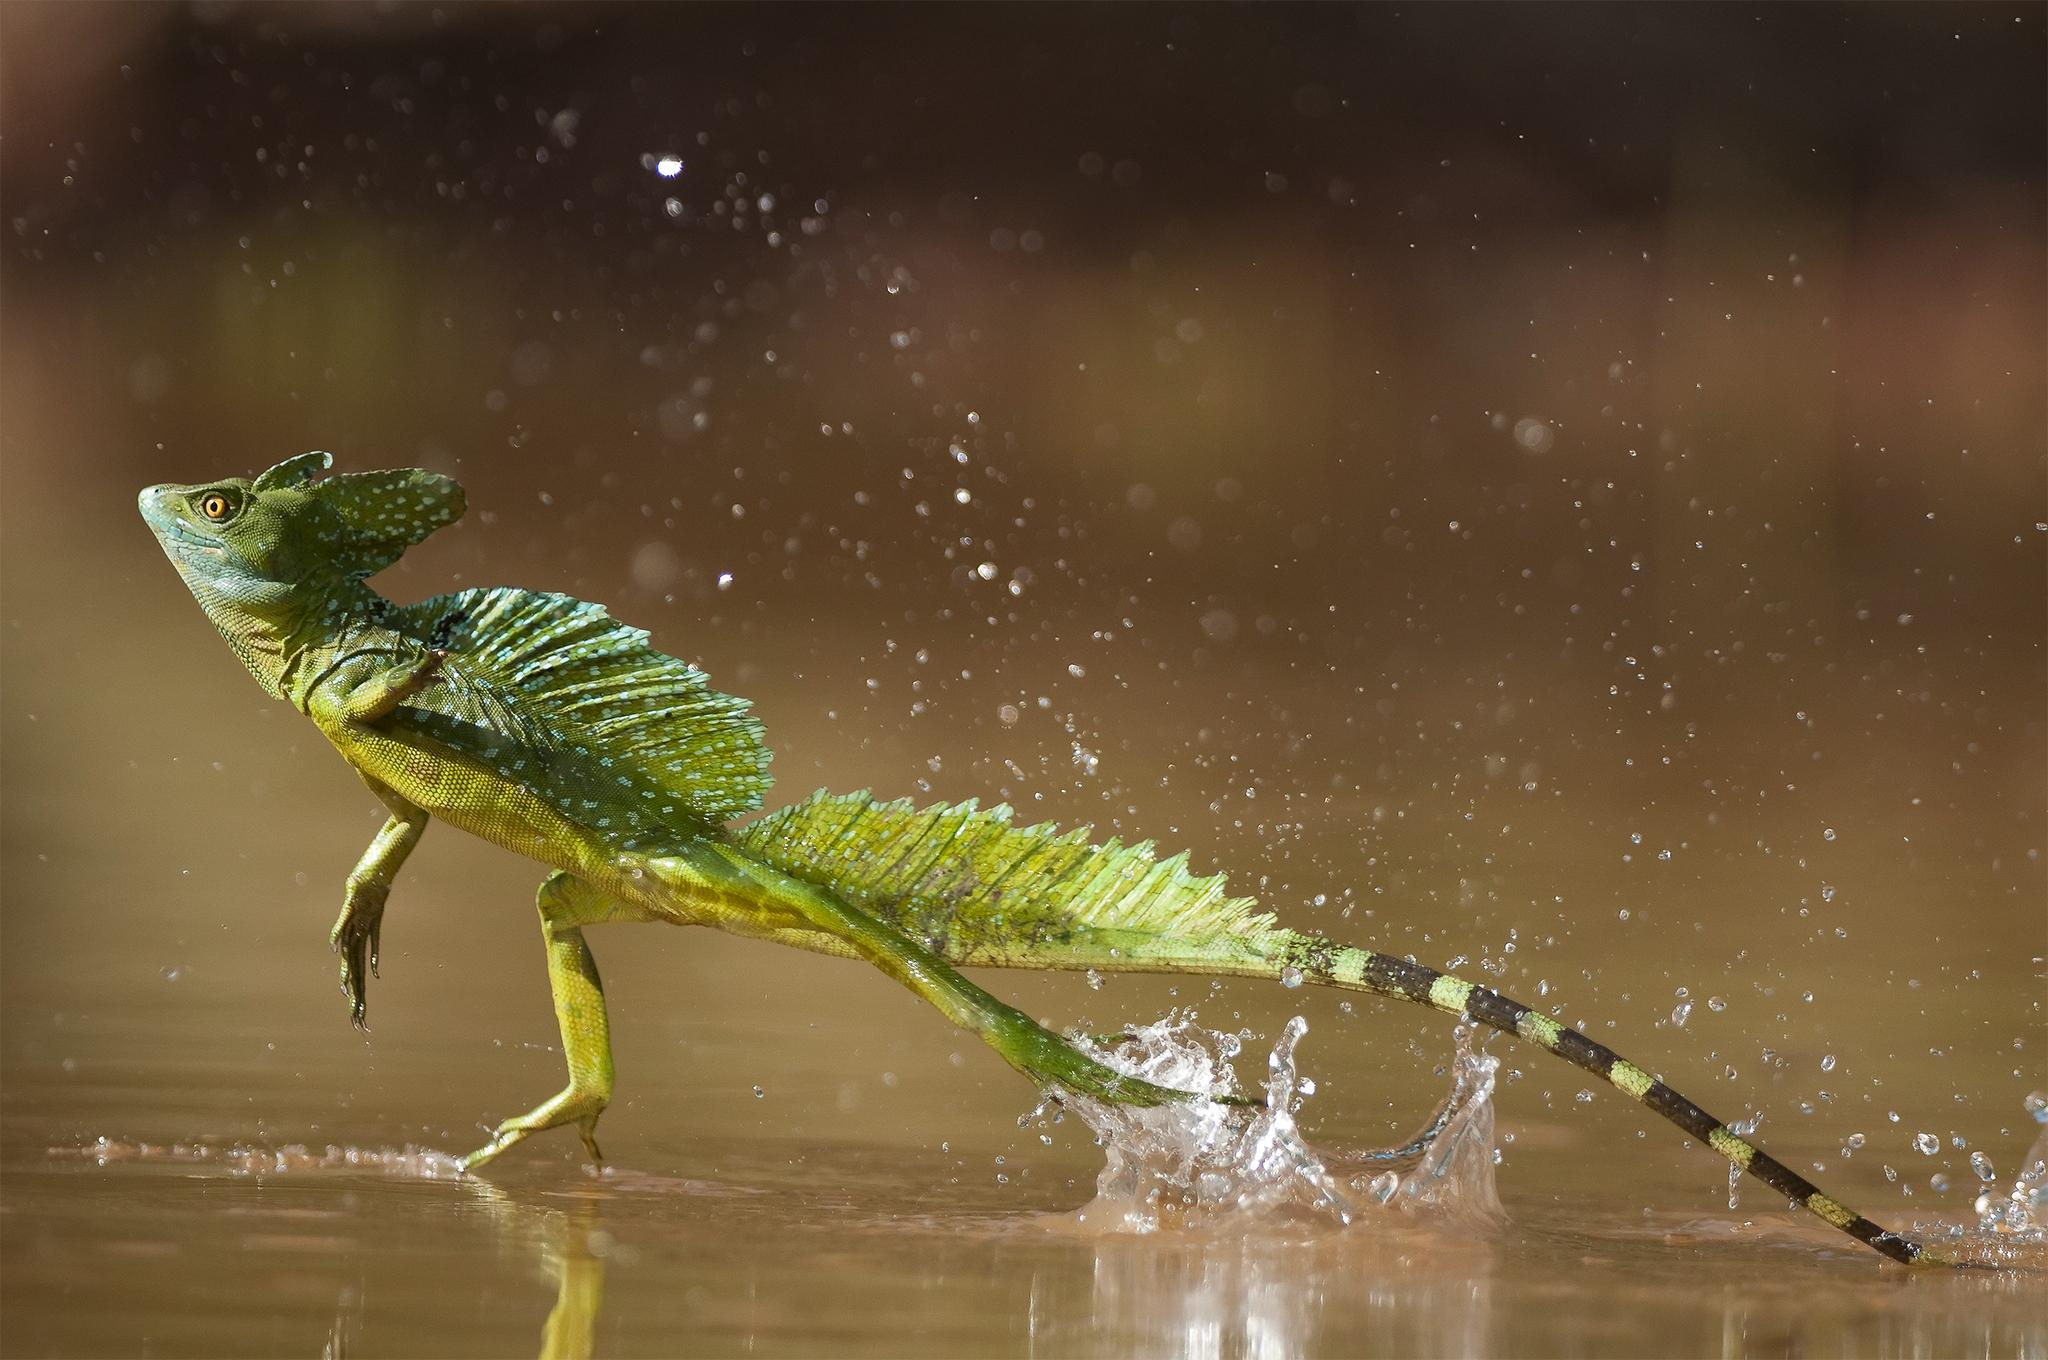 There's a lizard known as Jesus Christ Lizard due to its ability to run on the water. http://t.co/me2MlwRj8M